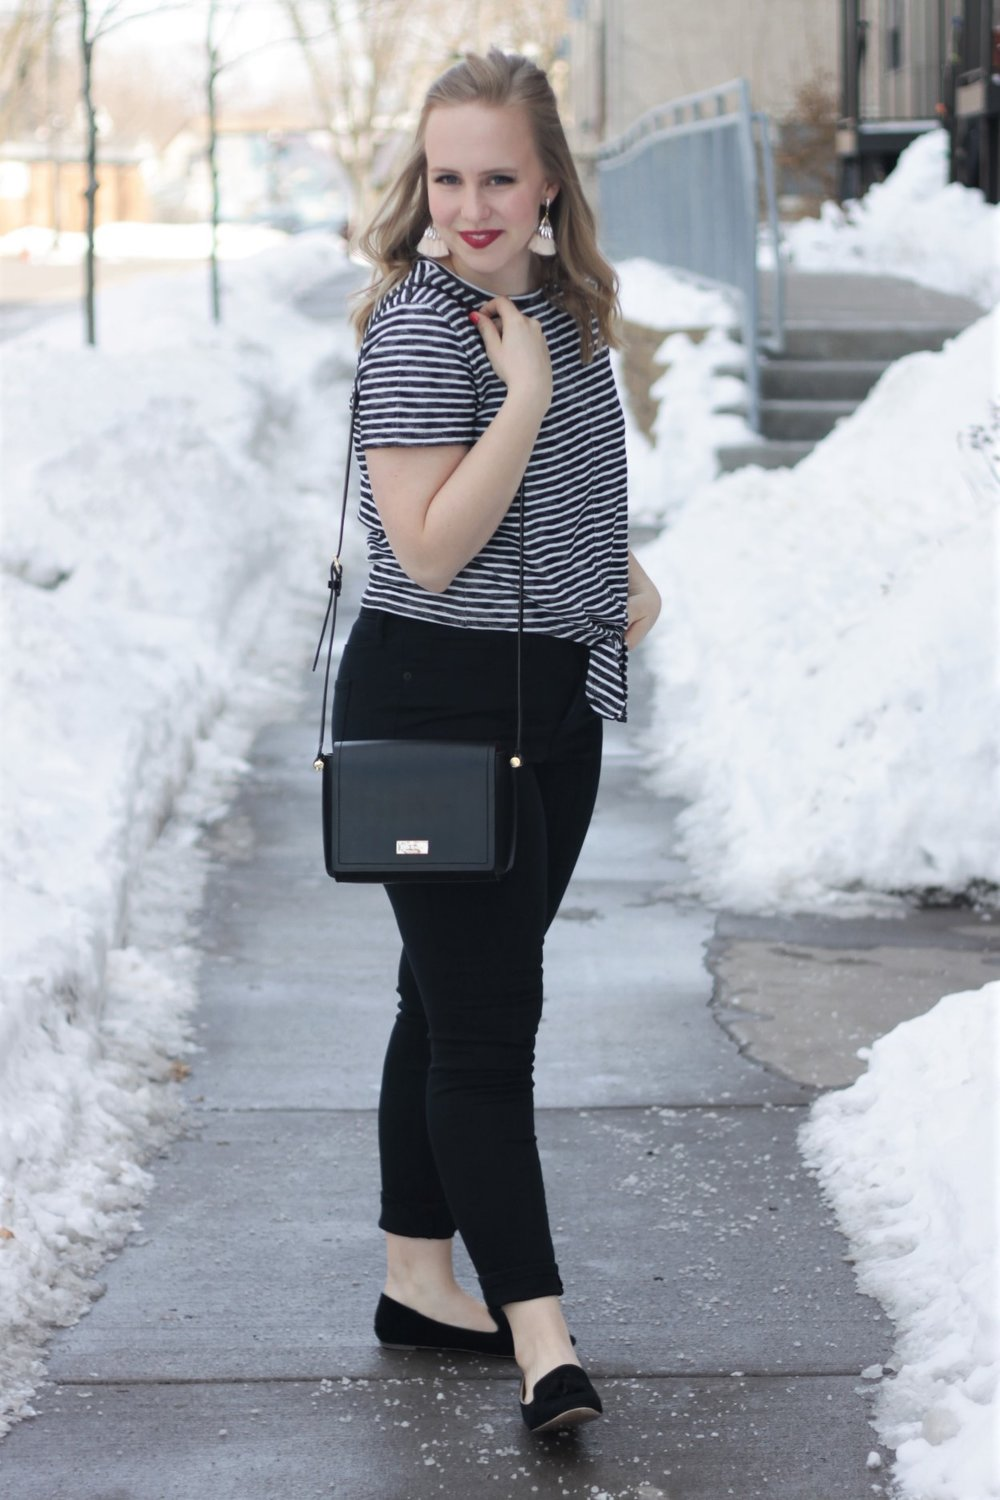 Striped Tie Top & Black Jeans | Work & What She Wore